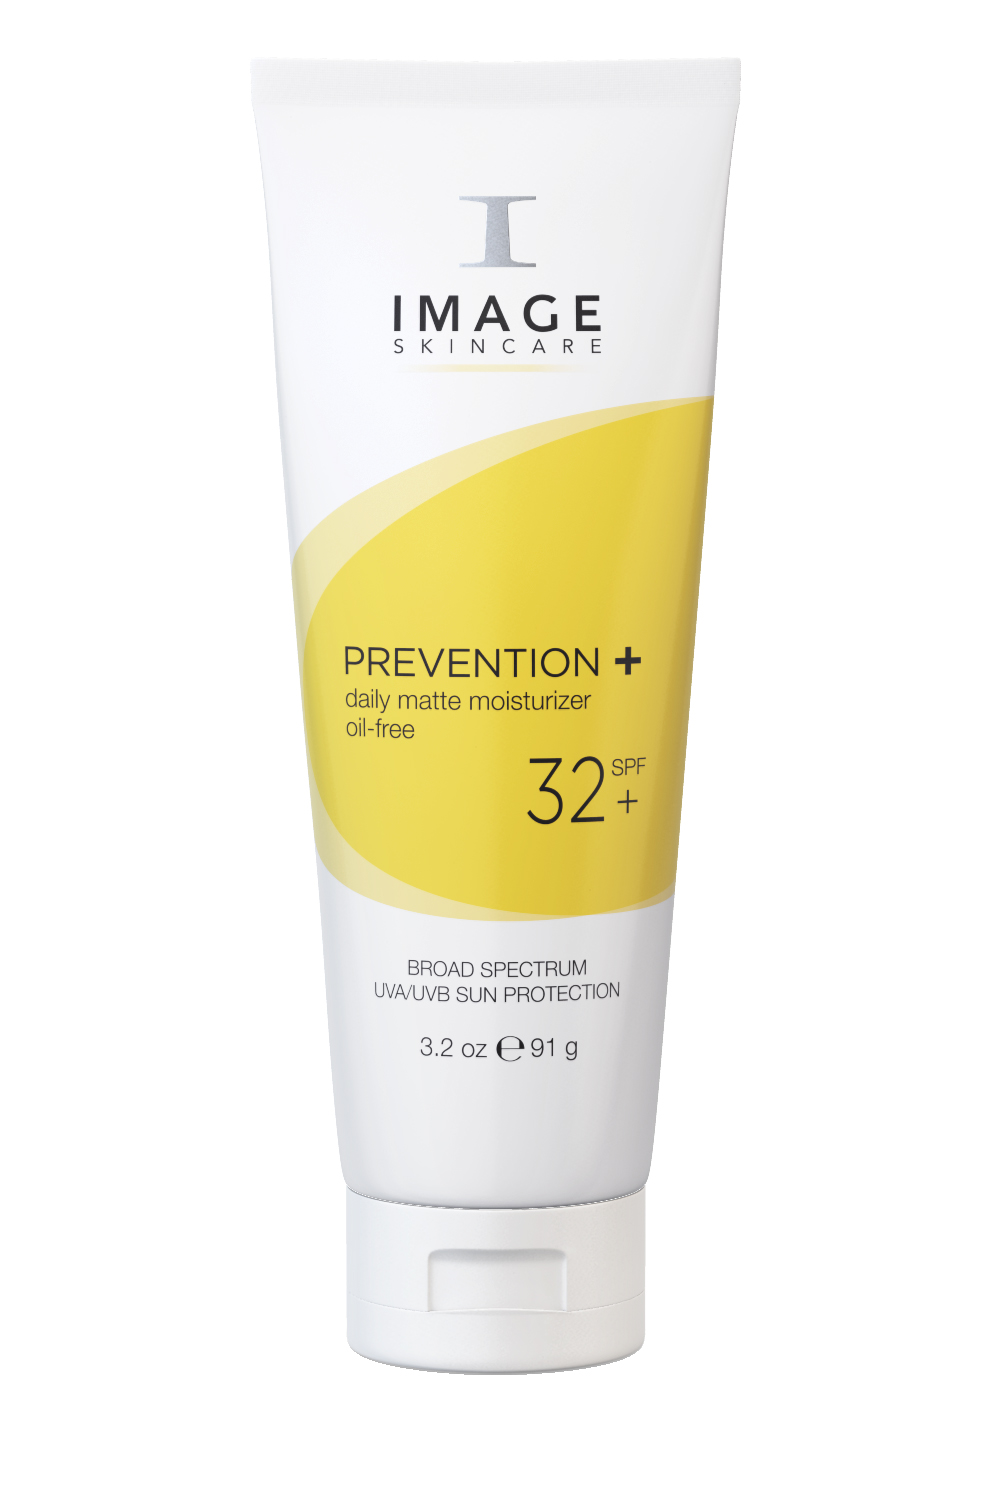 Image Prevention+ Matte Moisturiser SPF 30